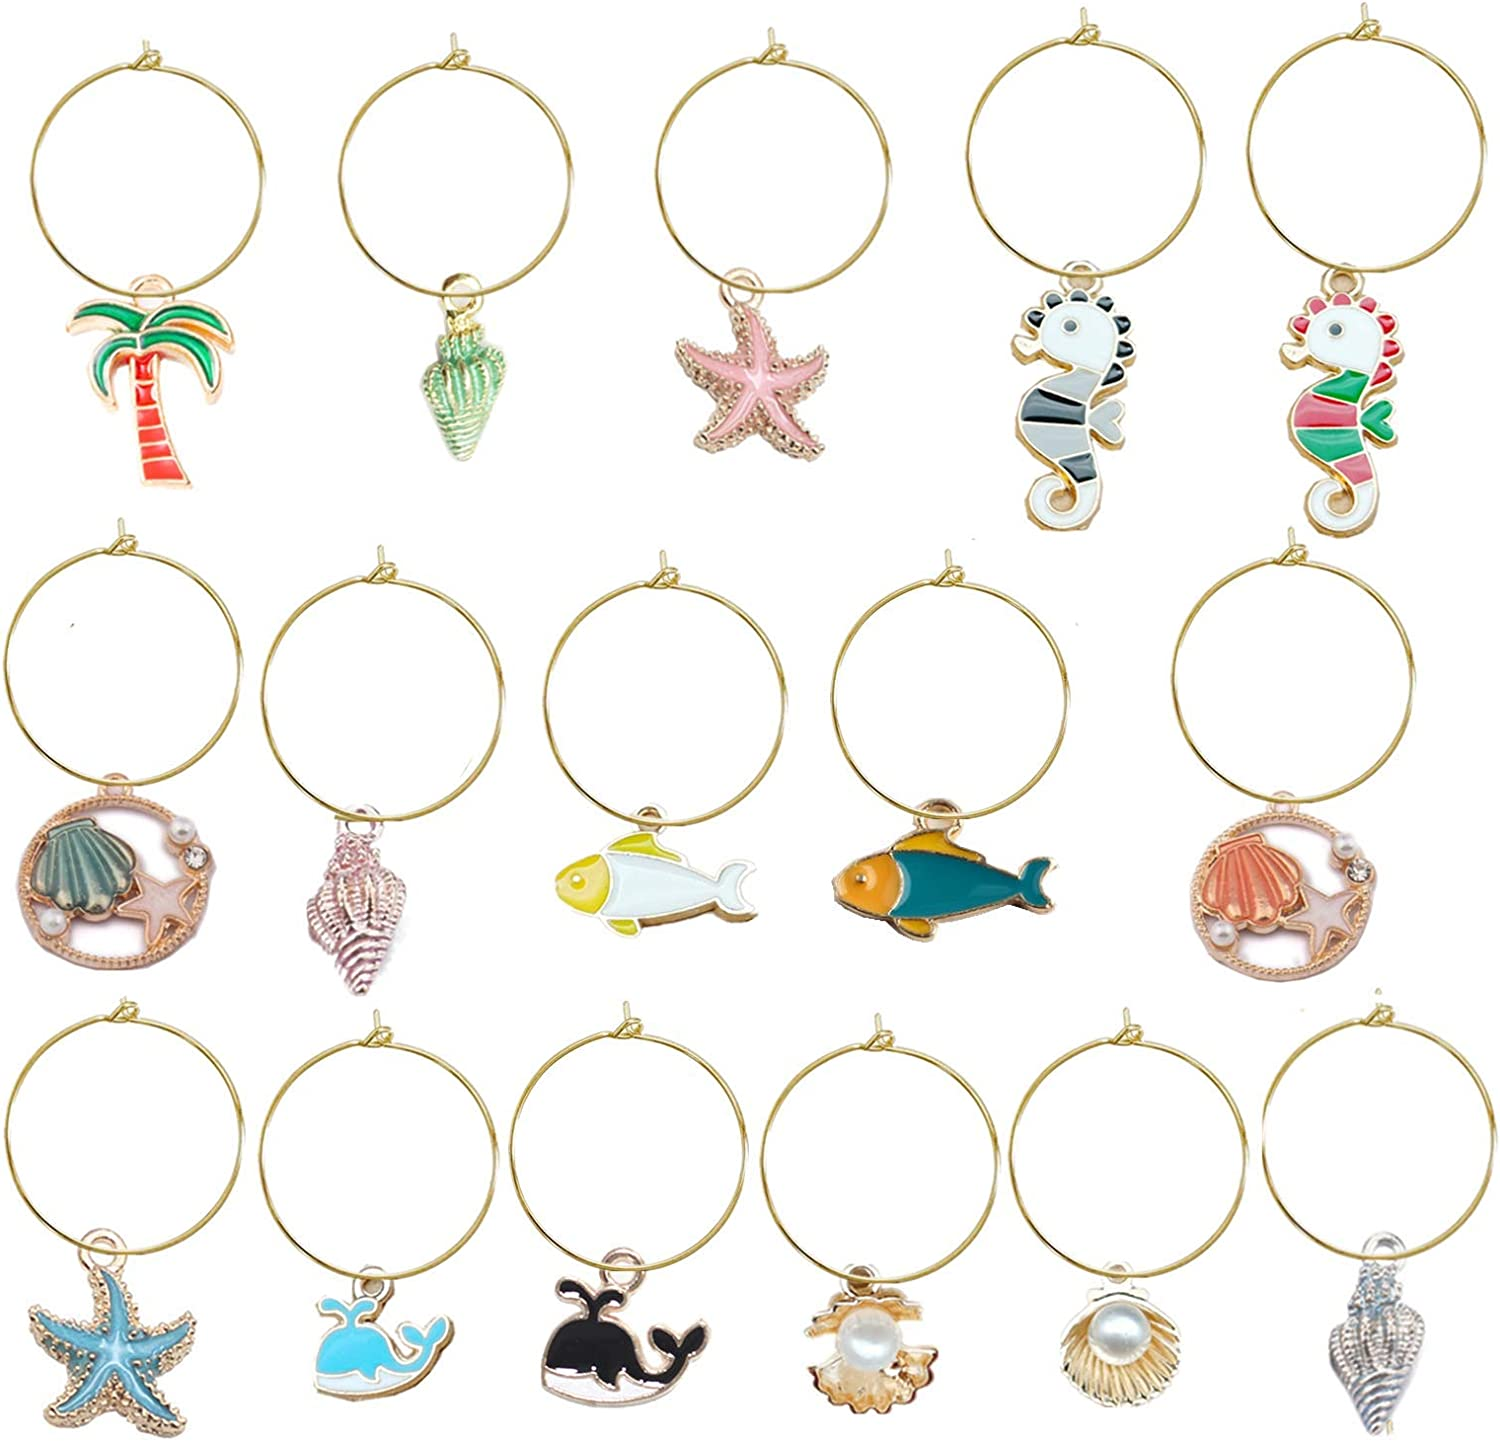 Wine Glass Charms Markers S Max 78% OFF Dealing full price reduction Tags Identification for